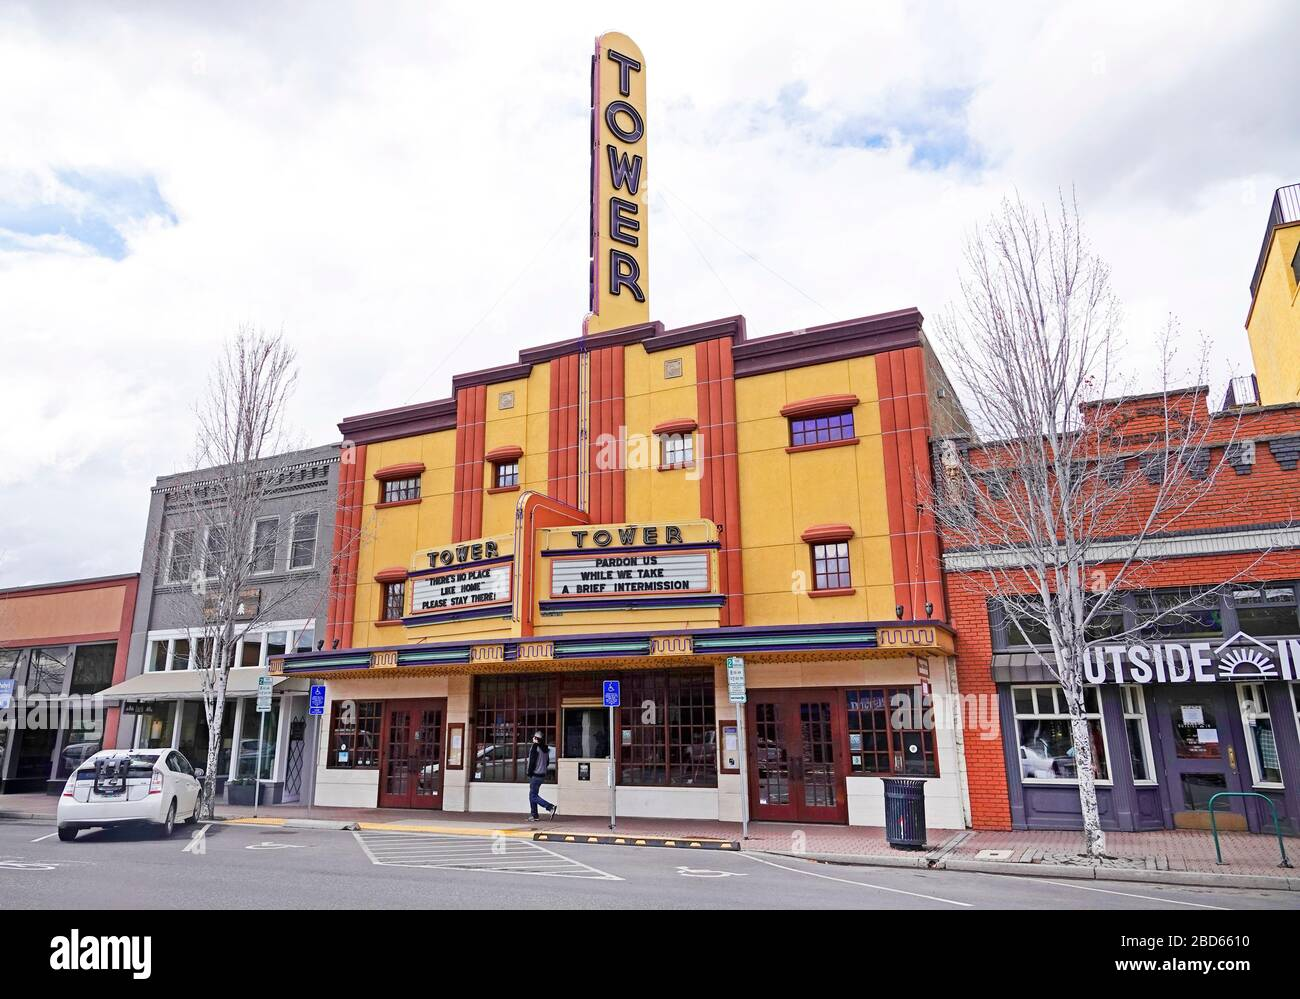 """The event venue Tower Theater in Bend, Oregon, displaying """"Stay Home"""" signs during the Coronavirus pandemic of 2020. Stock Photo"""